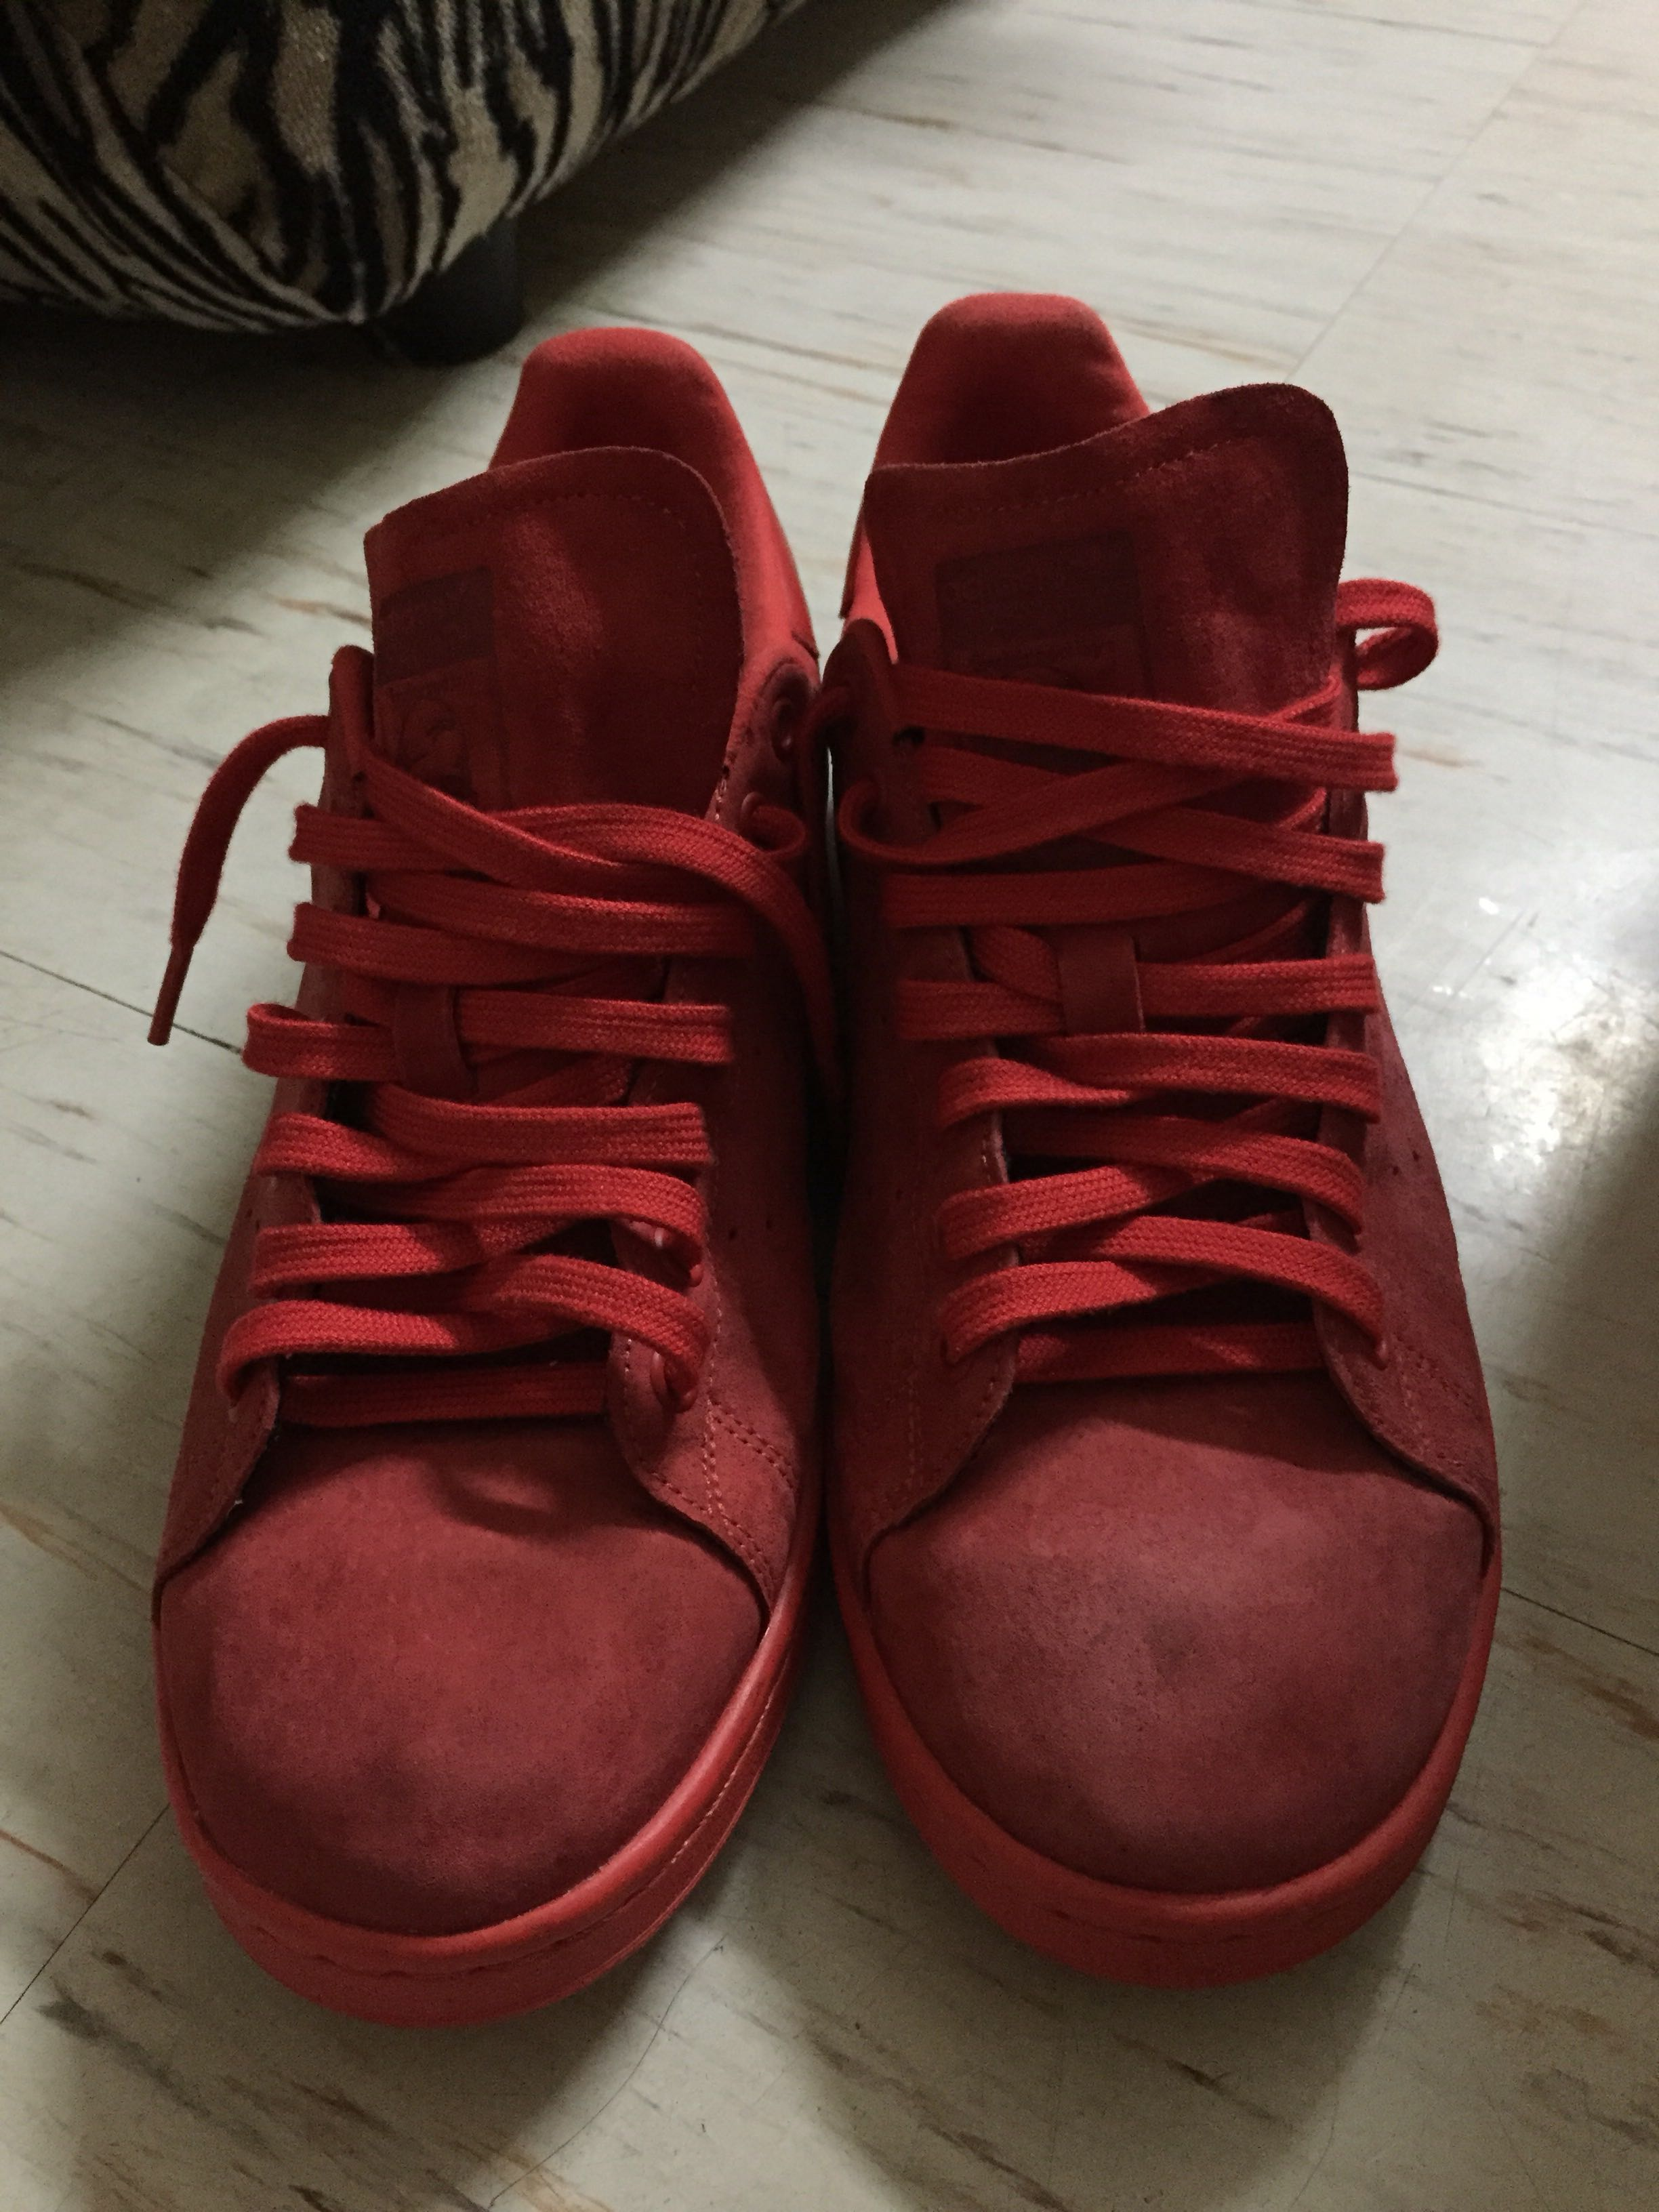 31963a41d ... clearance adidas stan smith powder red us size 10. 5 free shipping mens  fashion footwear